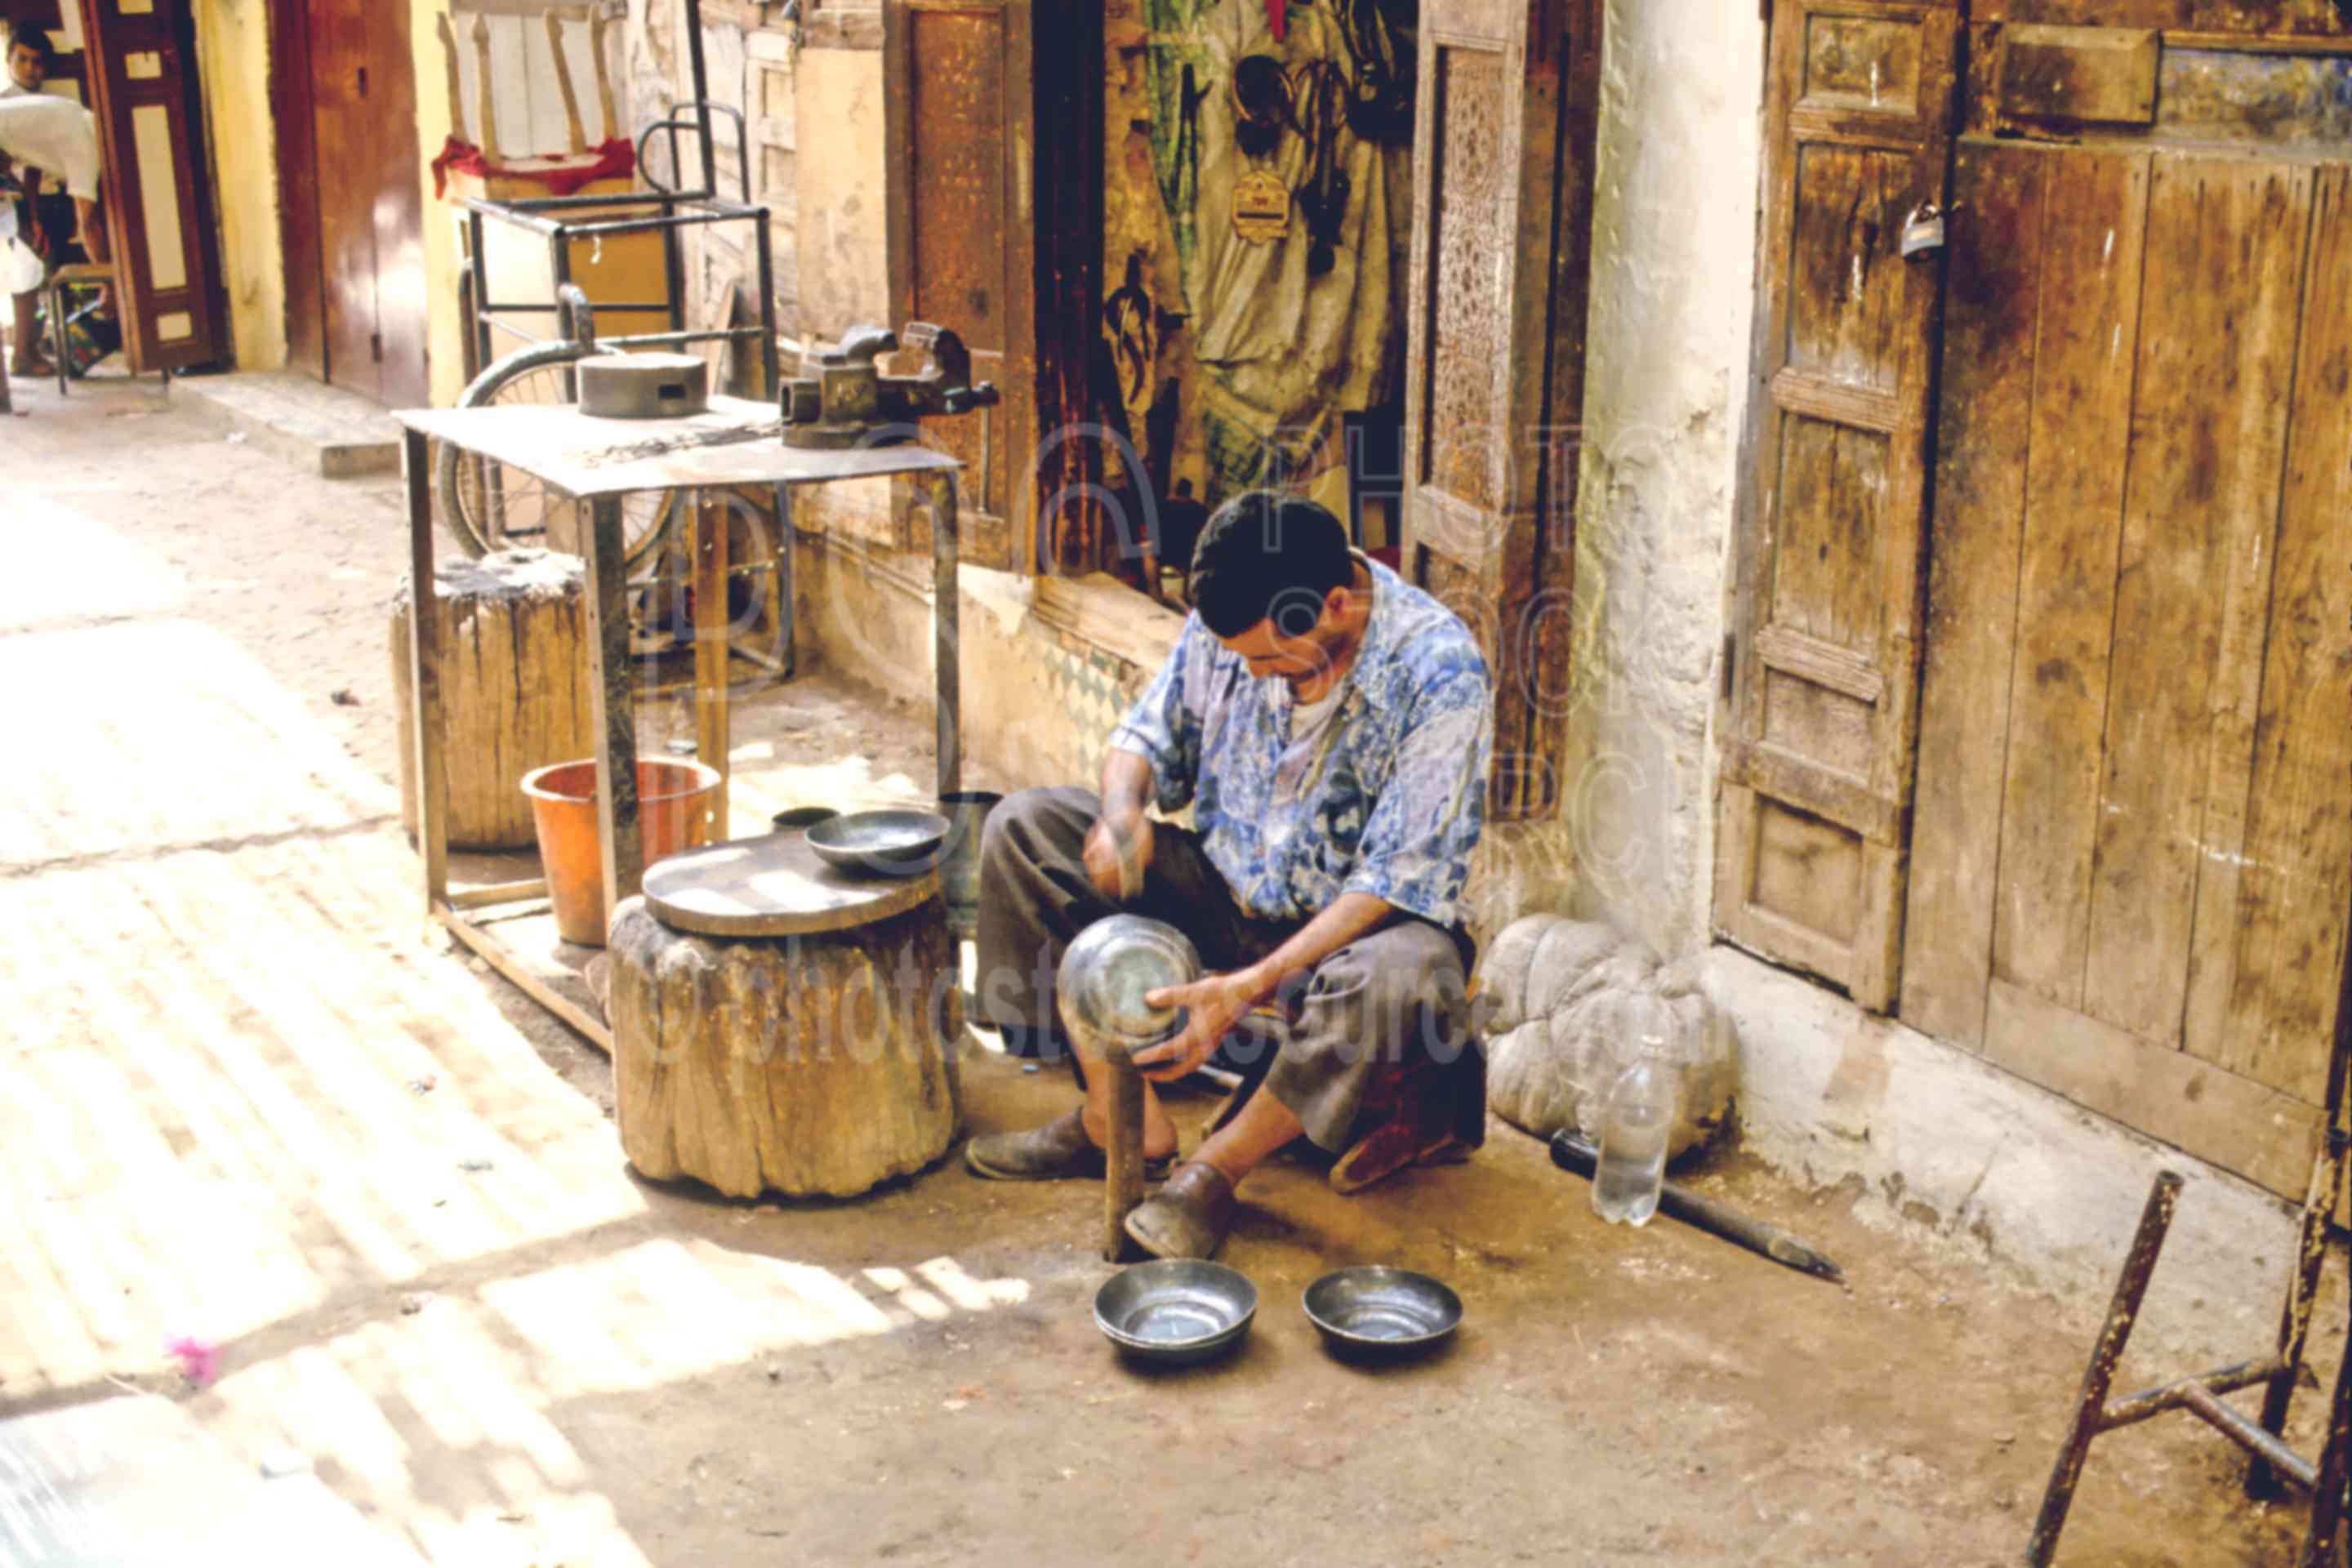 Metal Worker,mans,metal,smith,work,worker,morocco markets,cargo